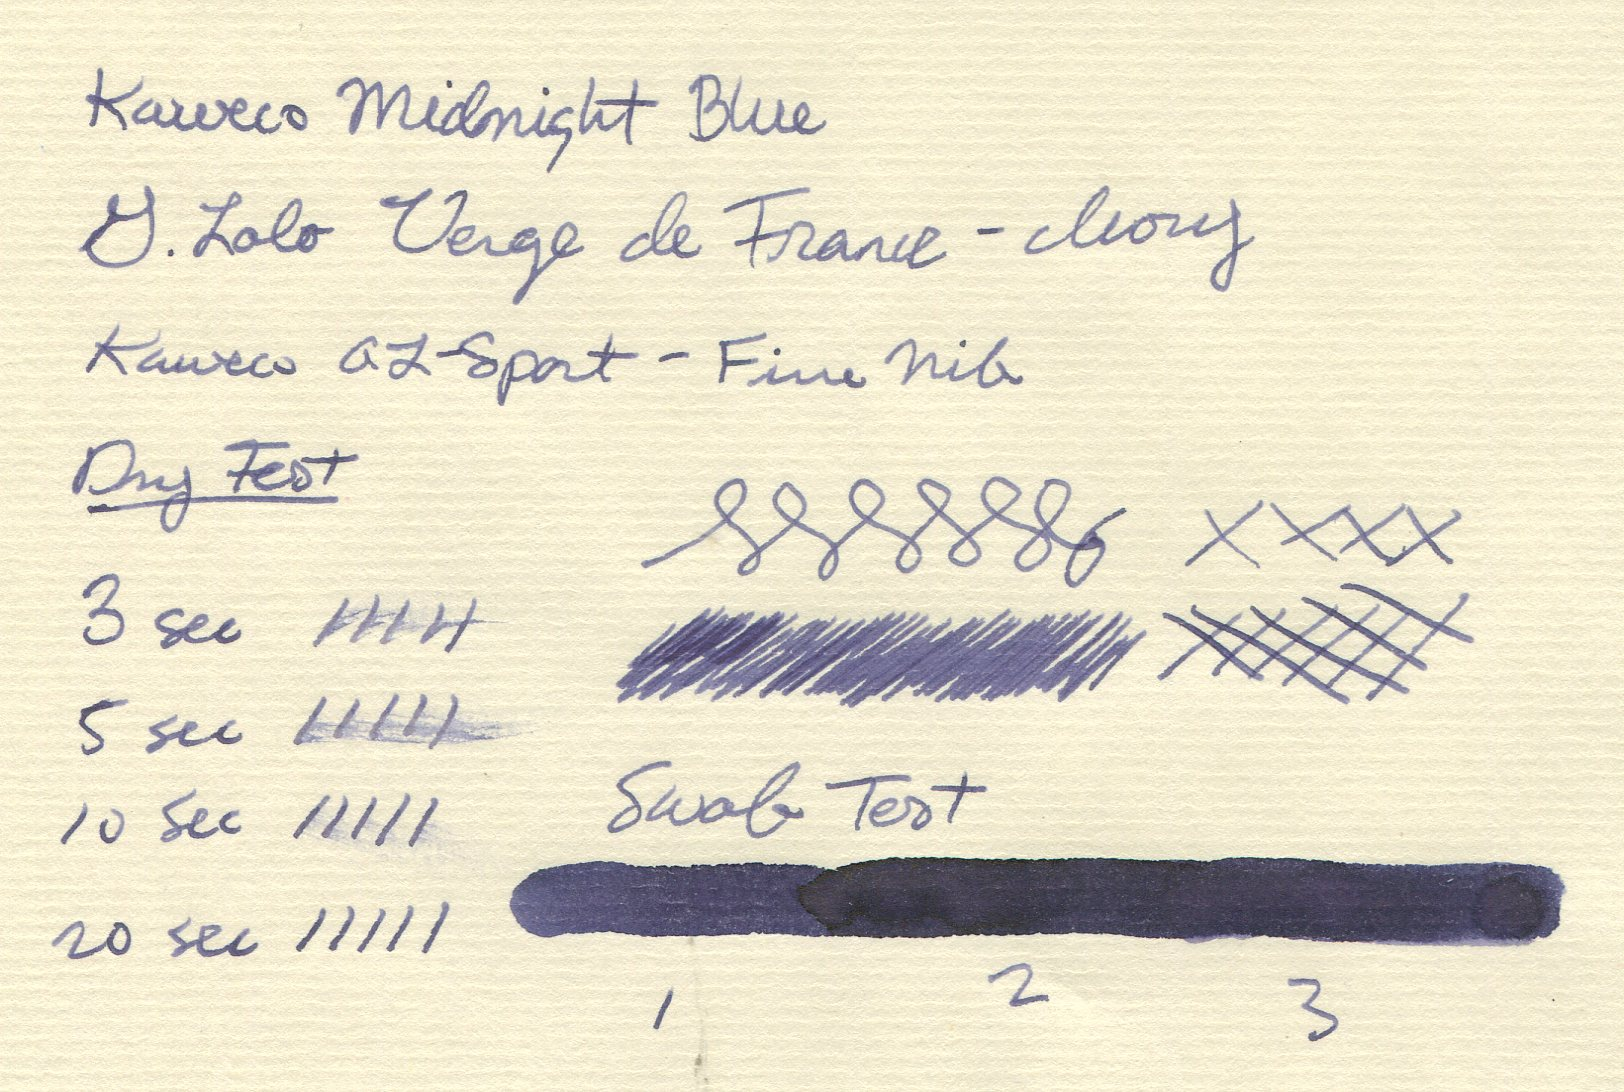 Kaweco-Midnight-Blue-GLalo-056